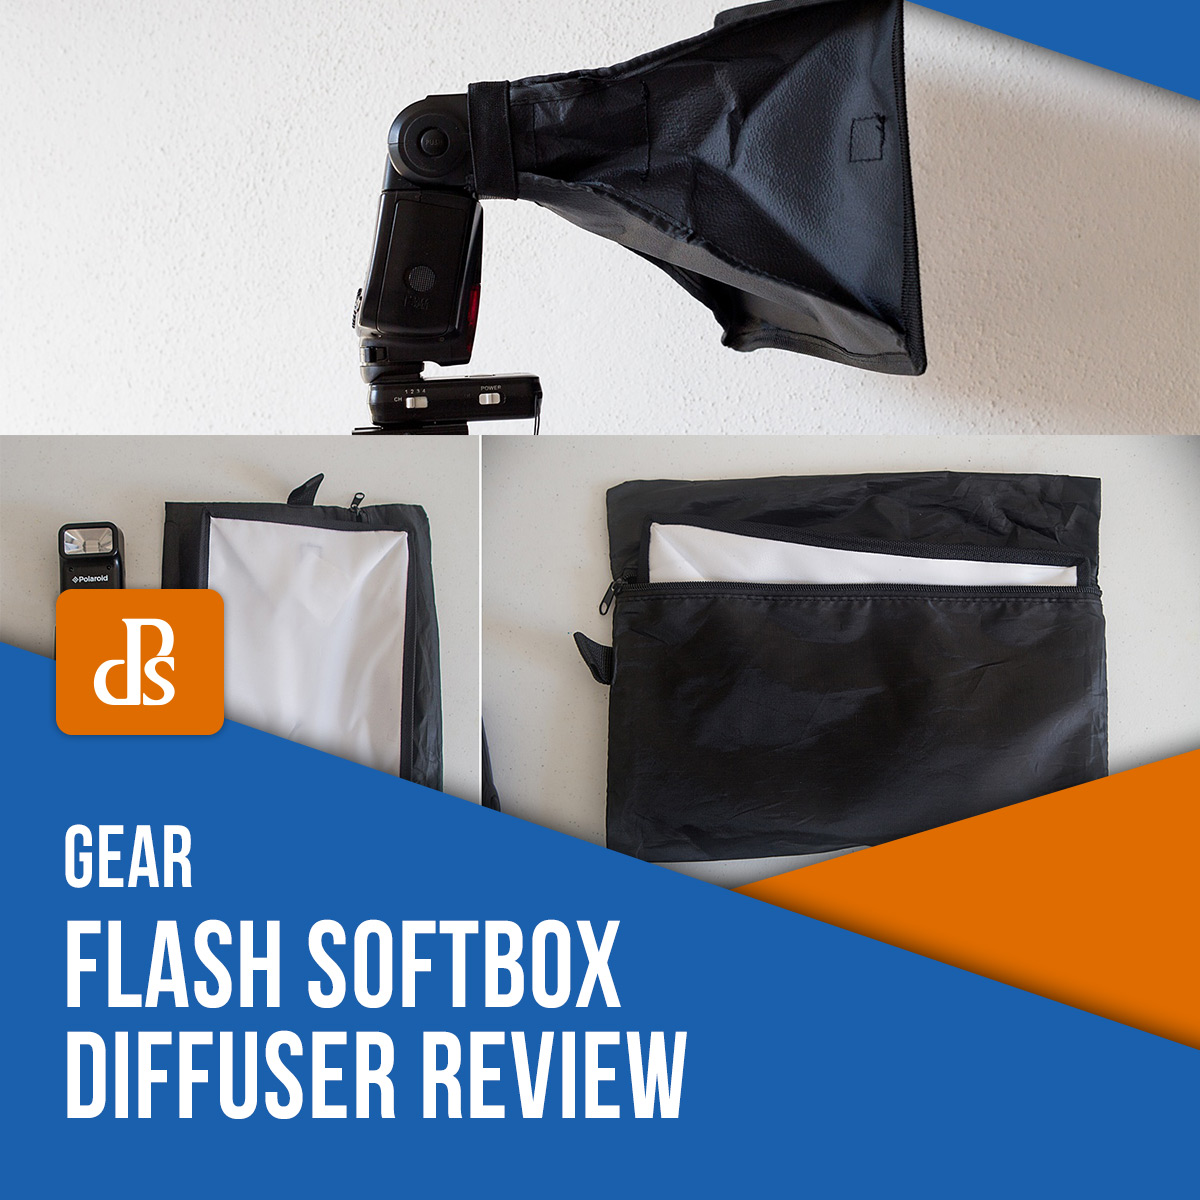 https://i0.wp.com/digital-photography-school.com/wp-content/uploads/2020/04/dps-flash-softbox-diffuser-review.jpg?ssl=1